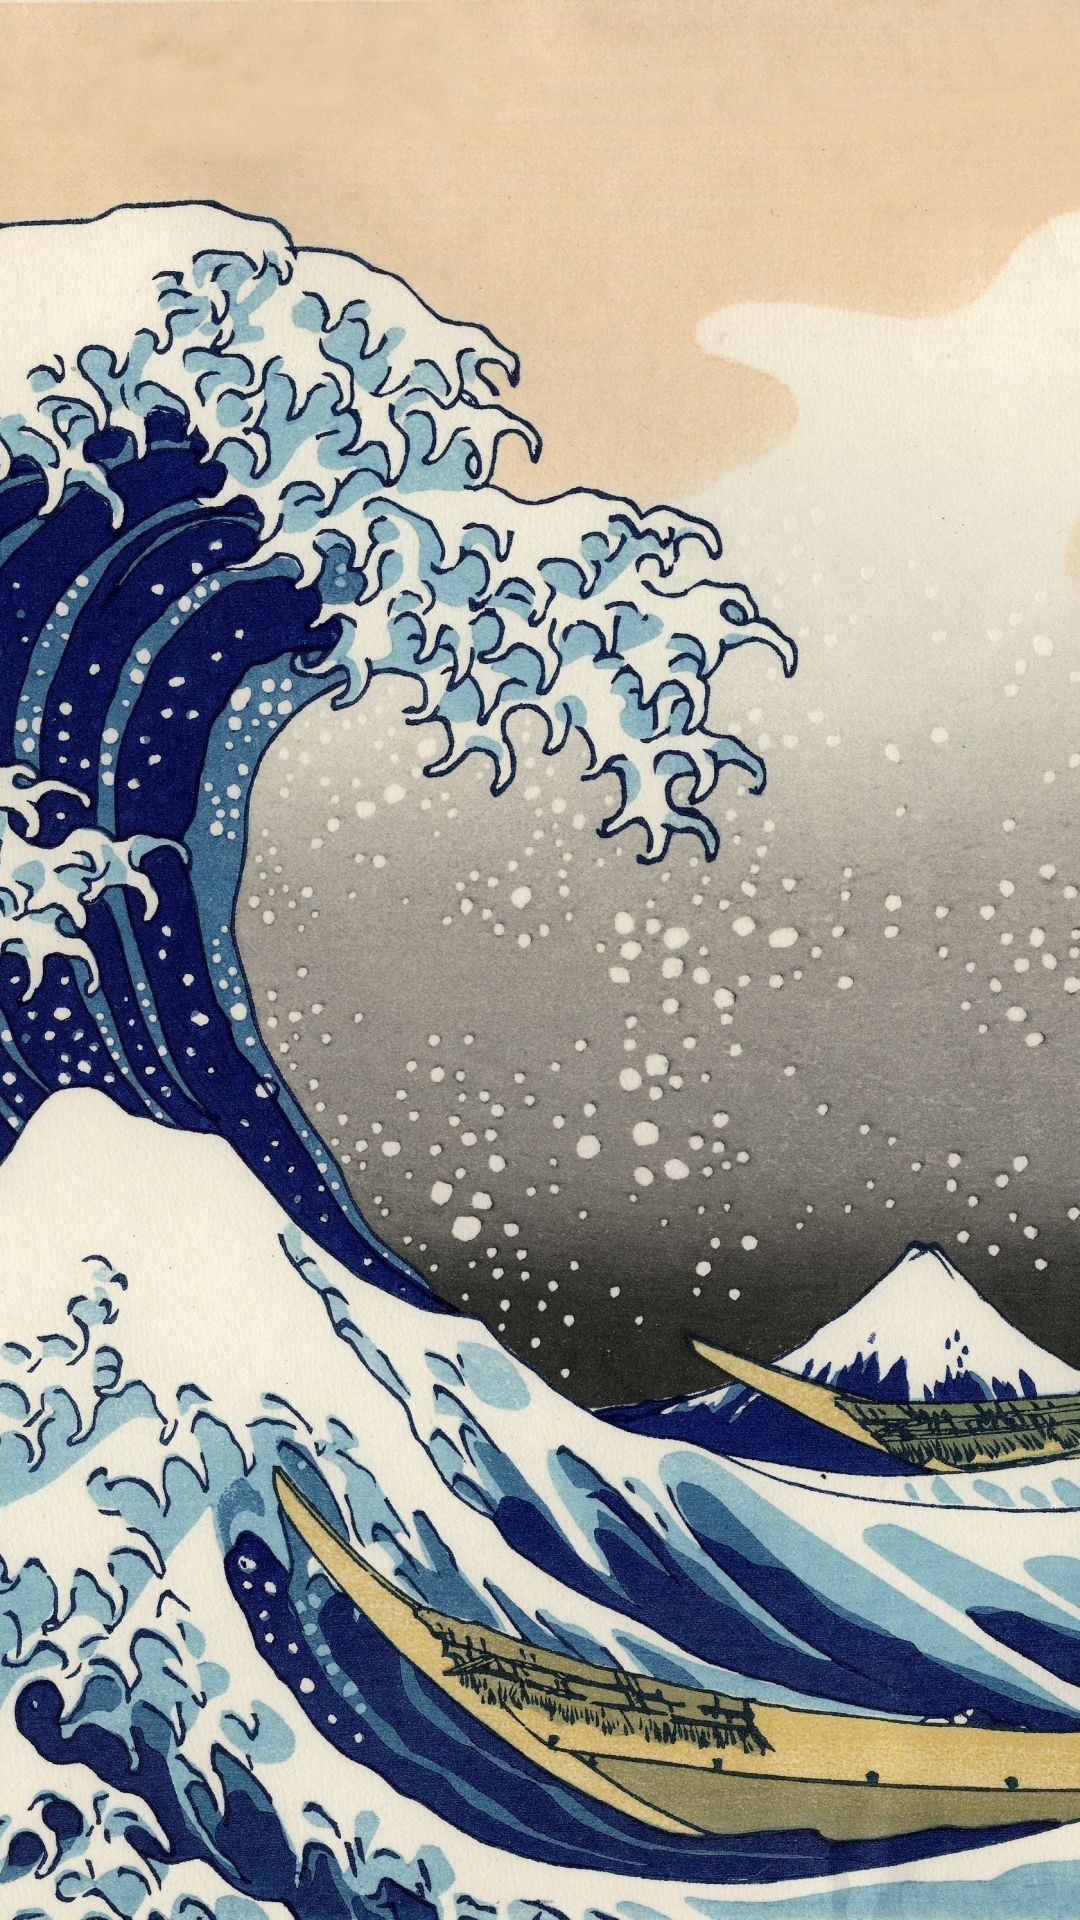 The Wave Japanese Painting Wallpapers - Top Free The Wave